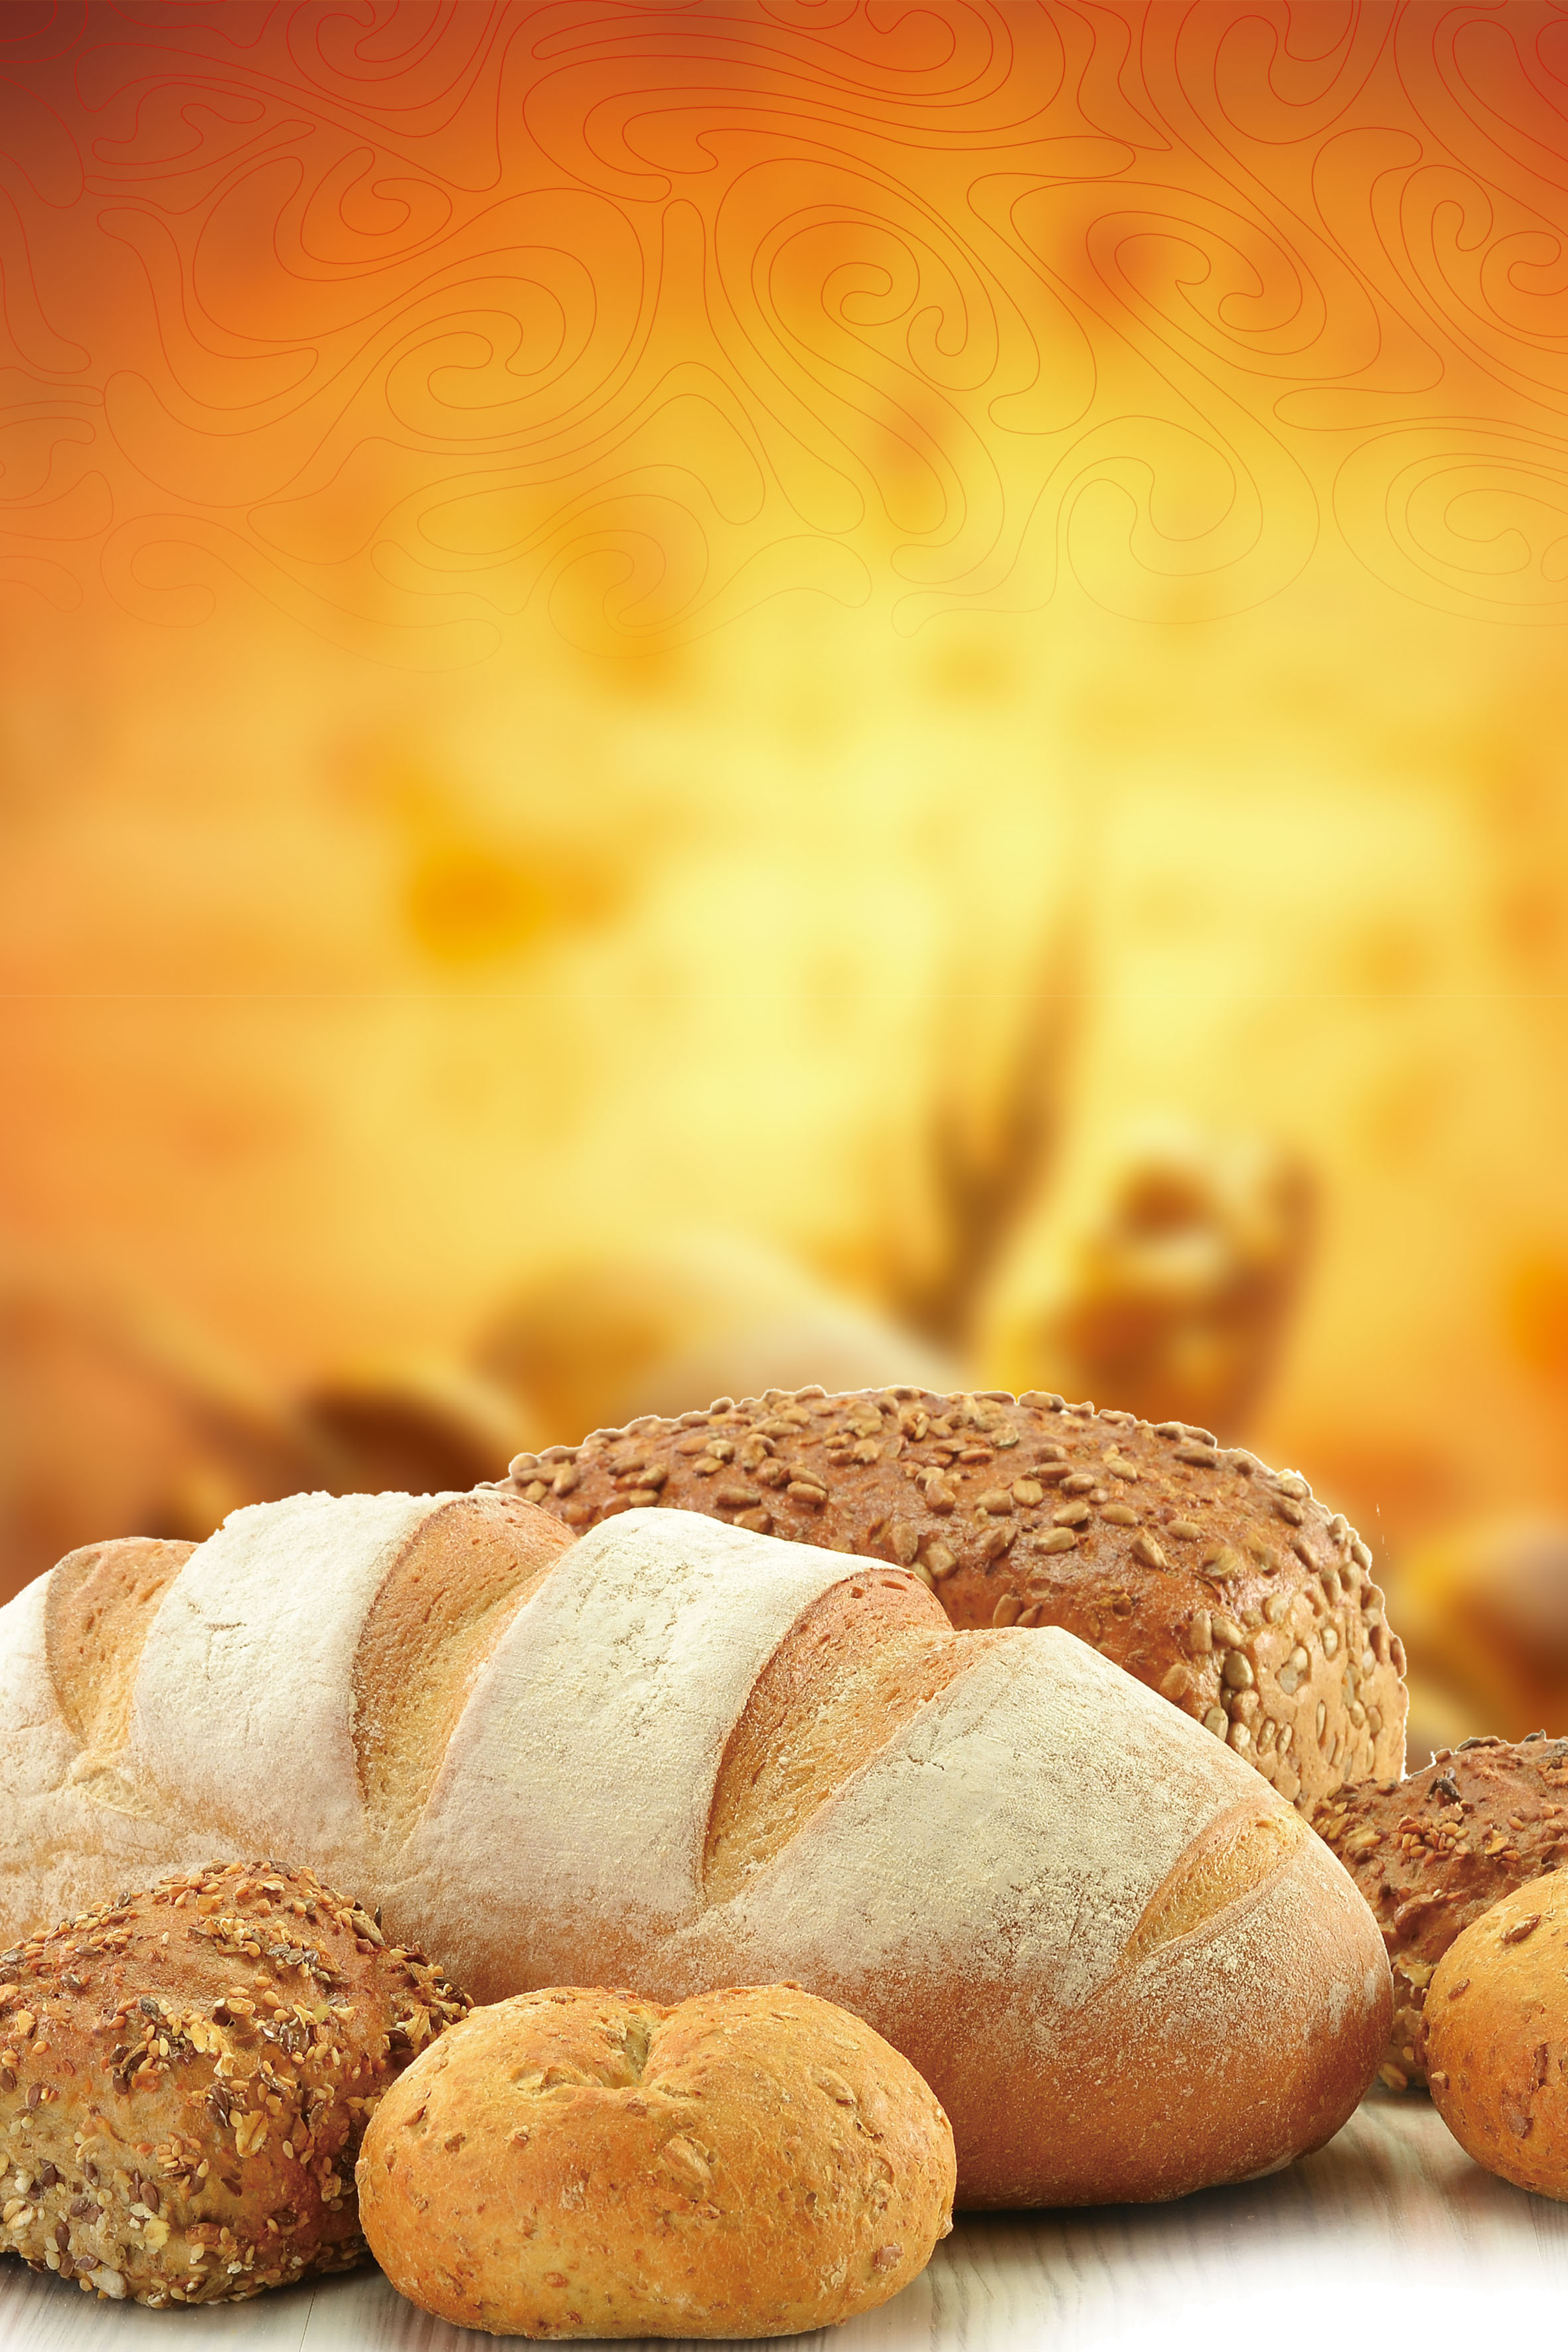 cake bread poster background material  cake  bakery